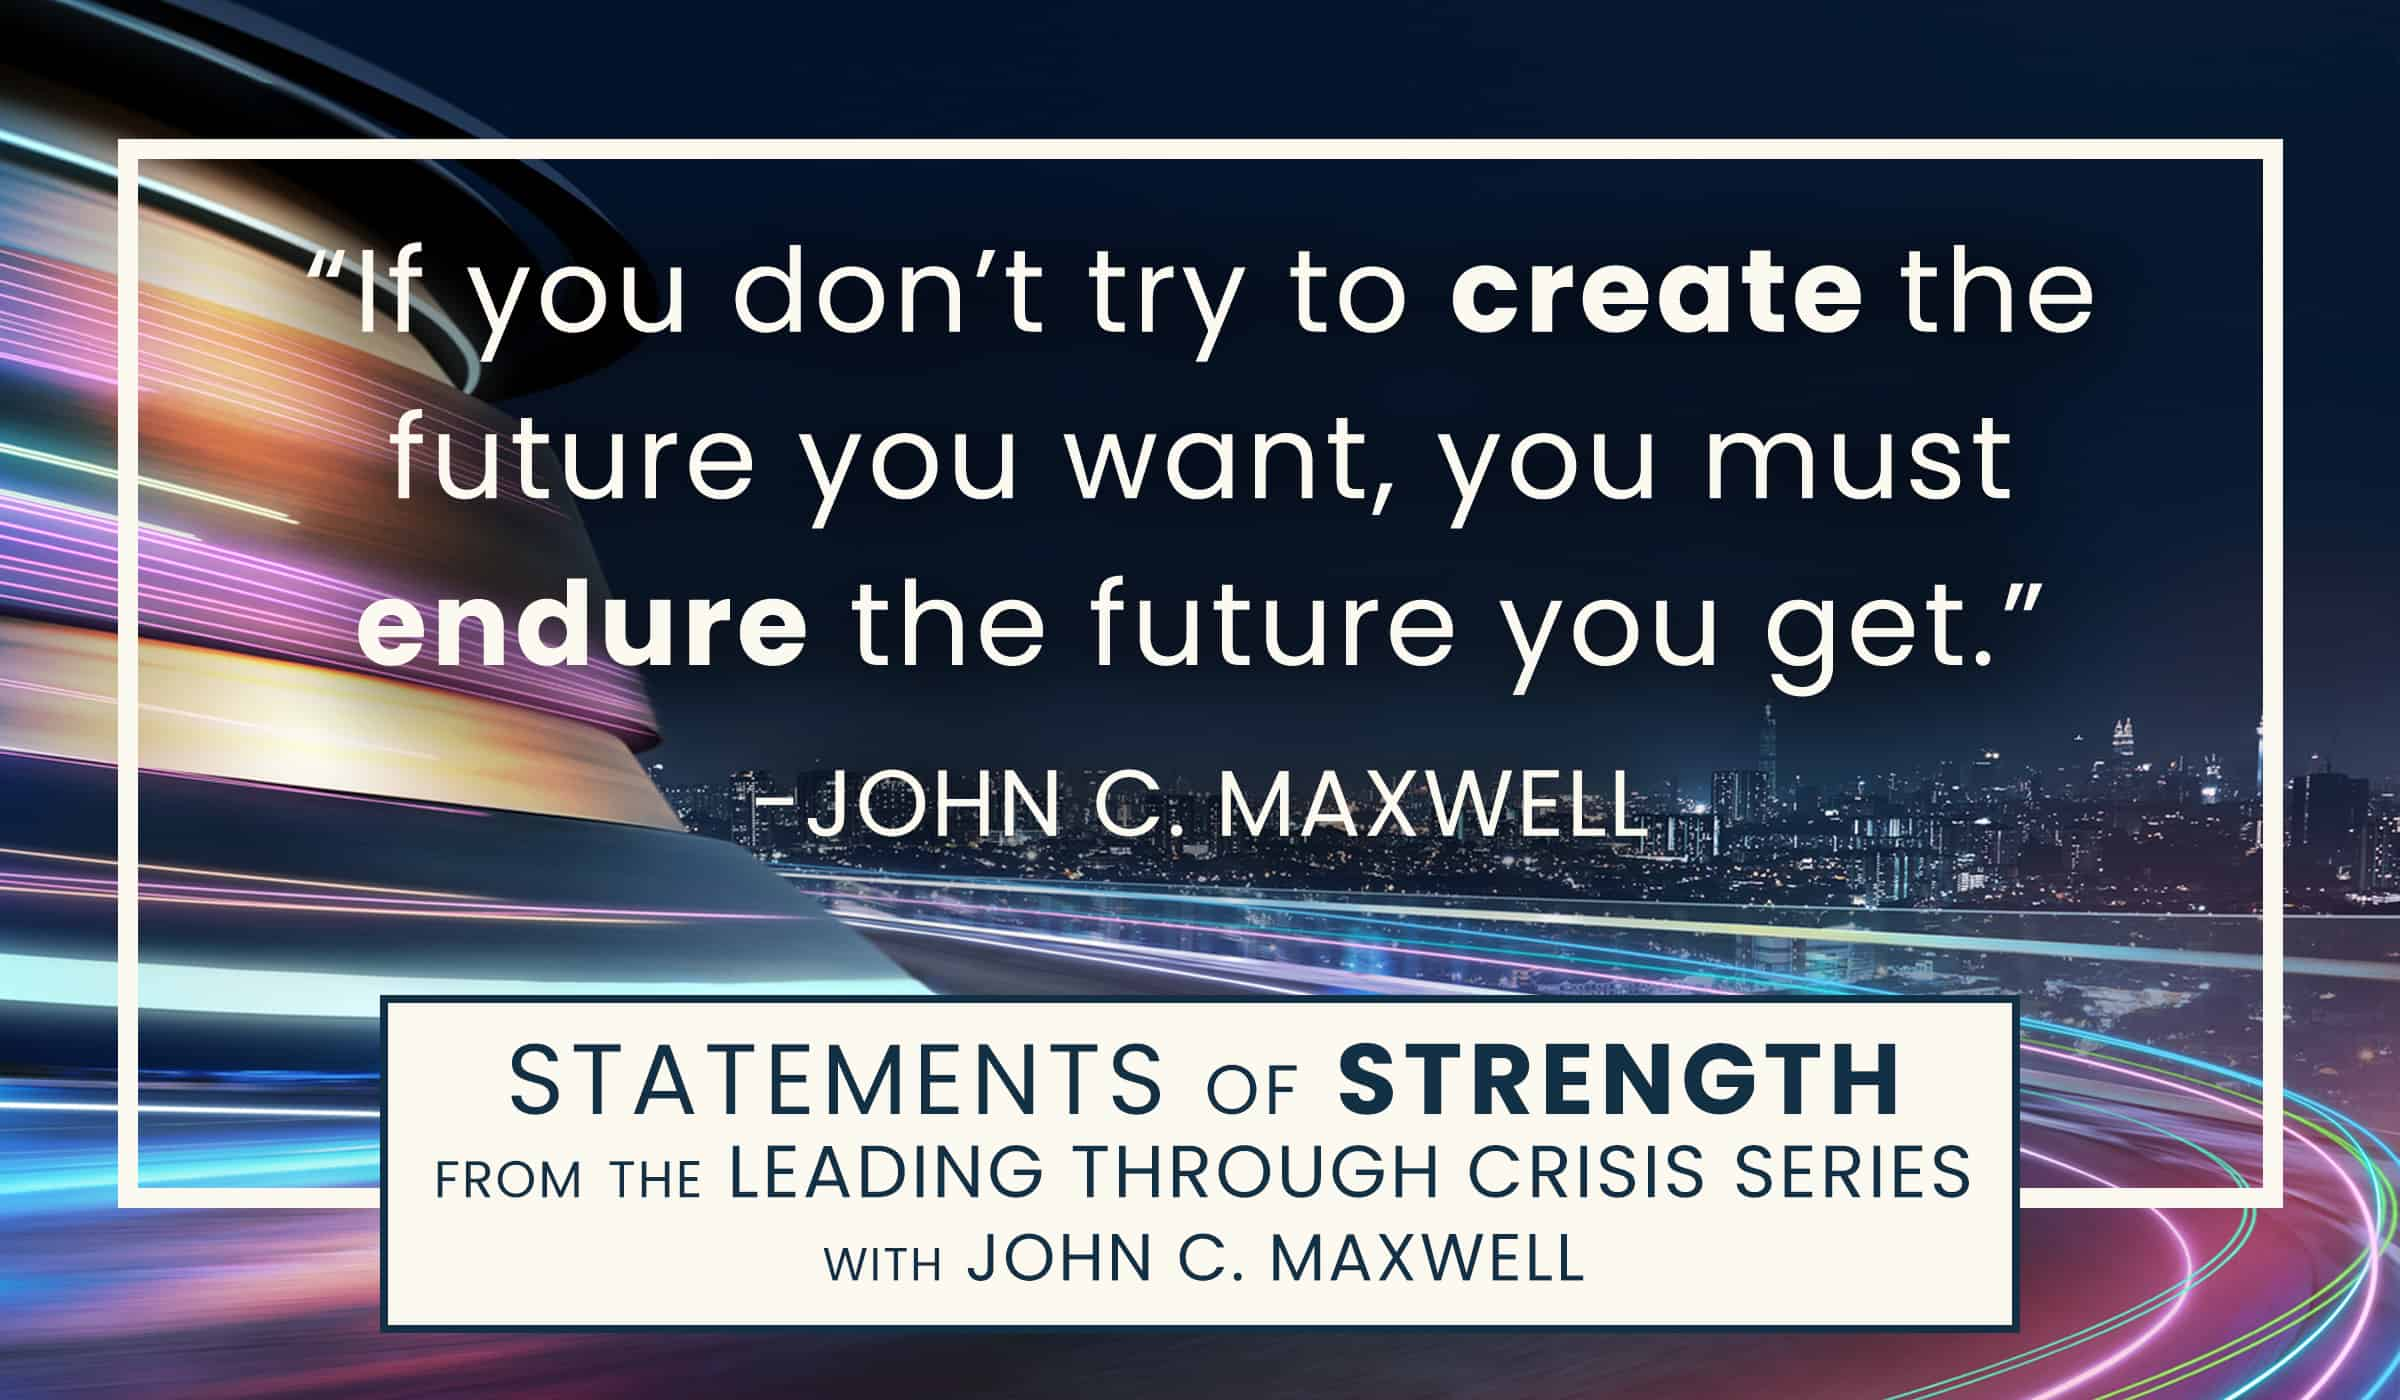 image of quotation picture with quote by John C Maxwell